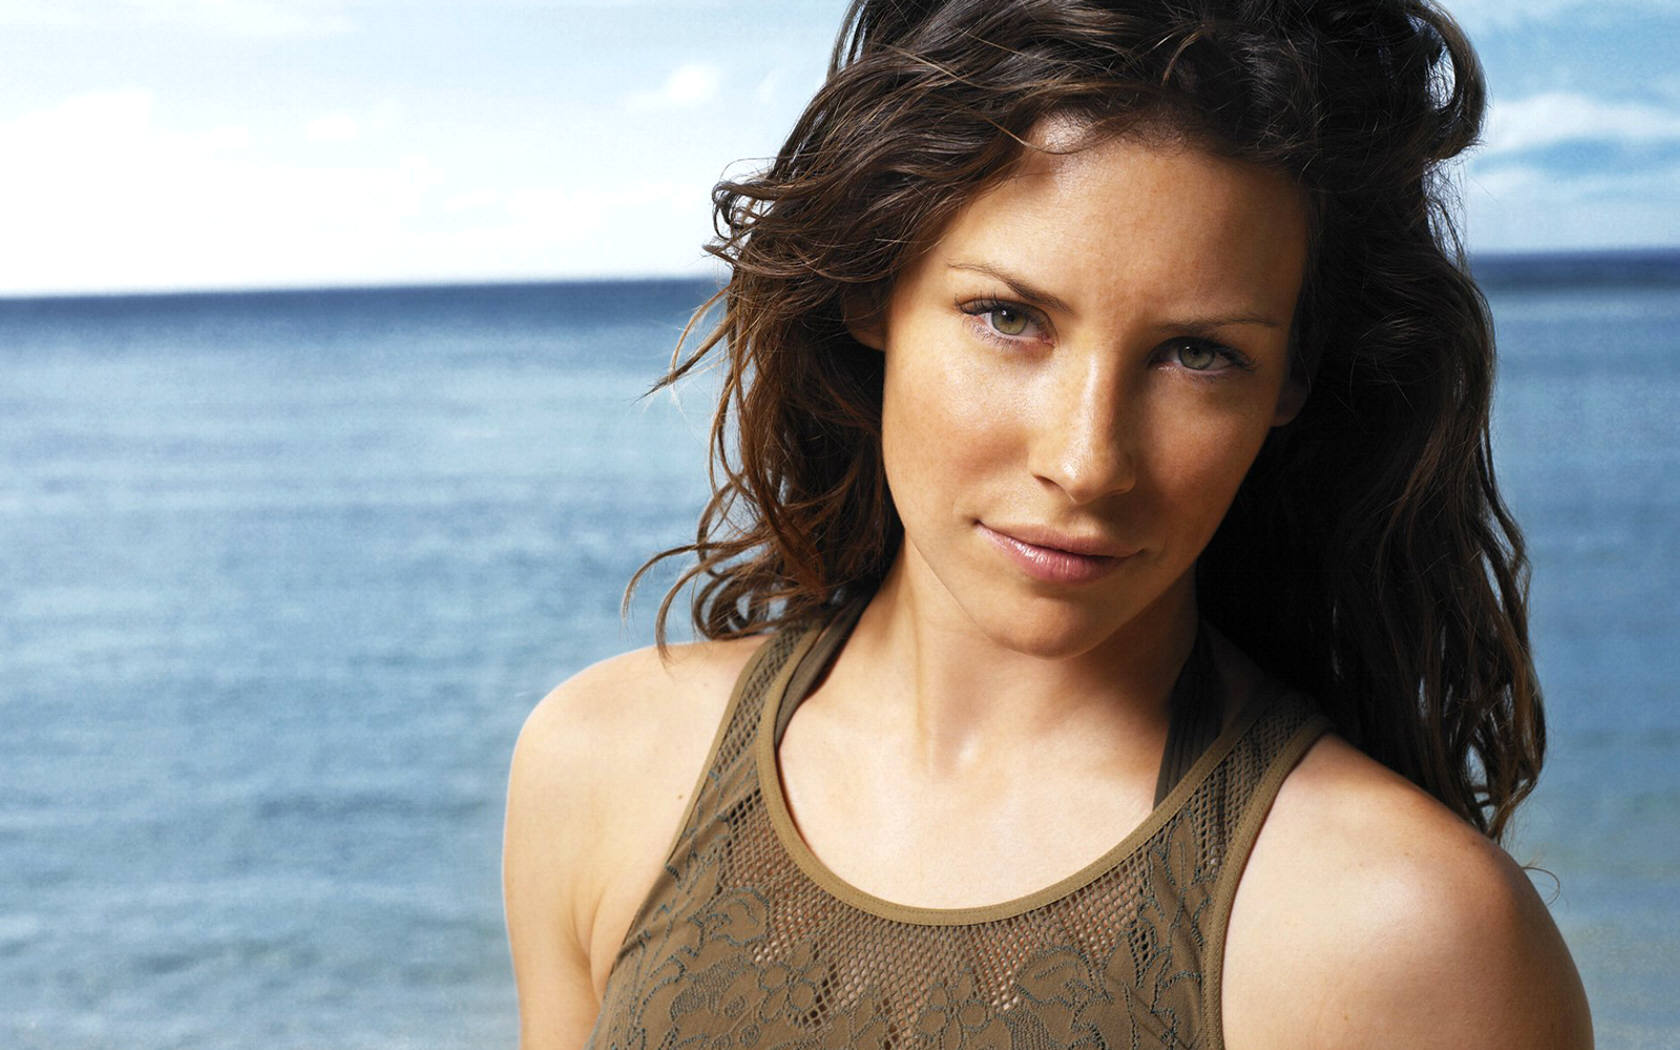 evangeline lilly computer wallpaper 55290